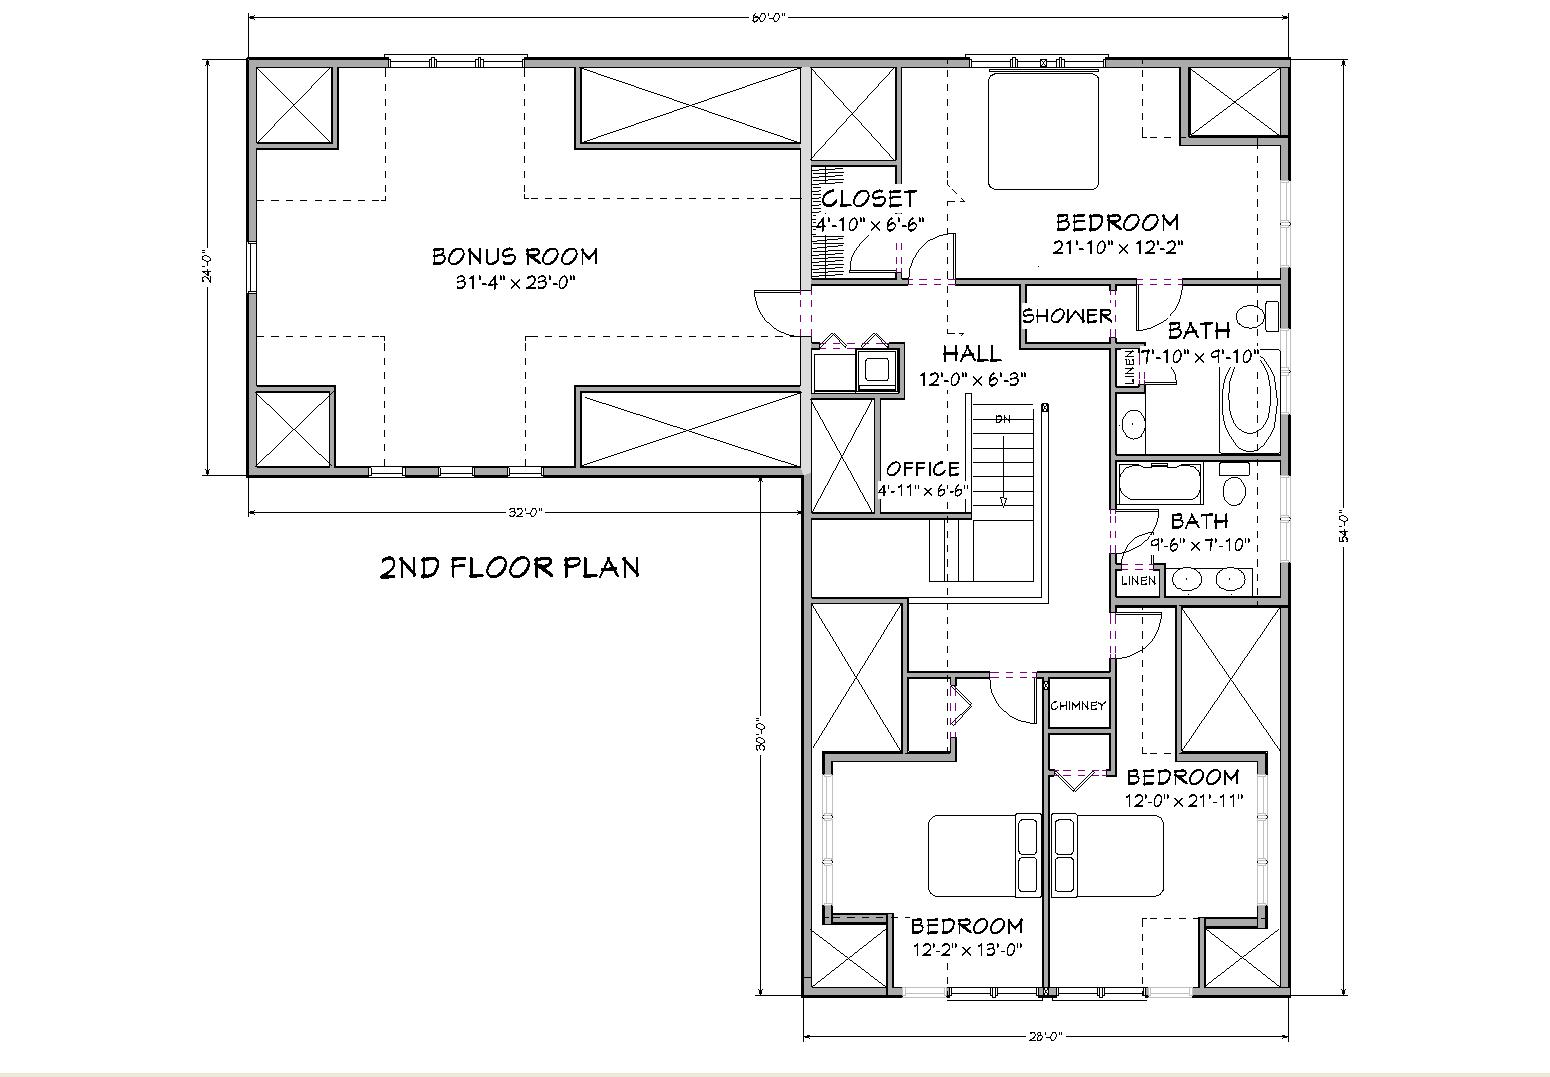 3000 square foot home plans floor plans 3000 square foot homes